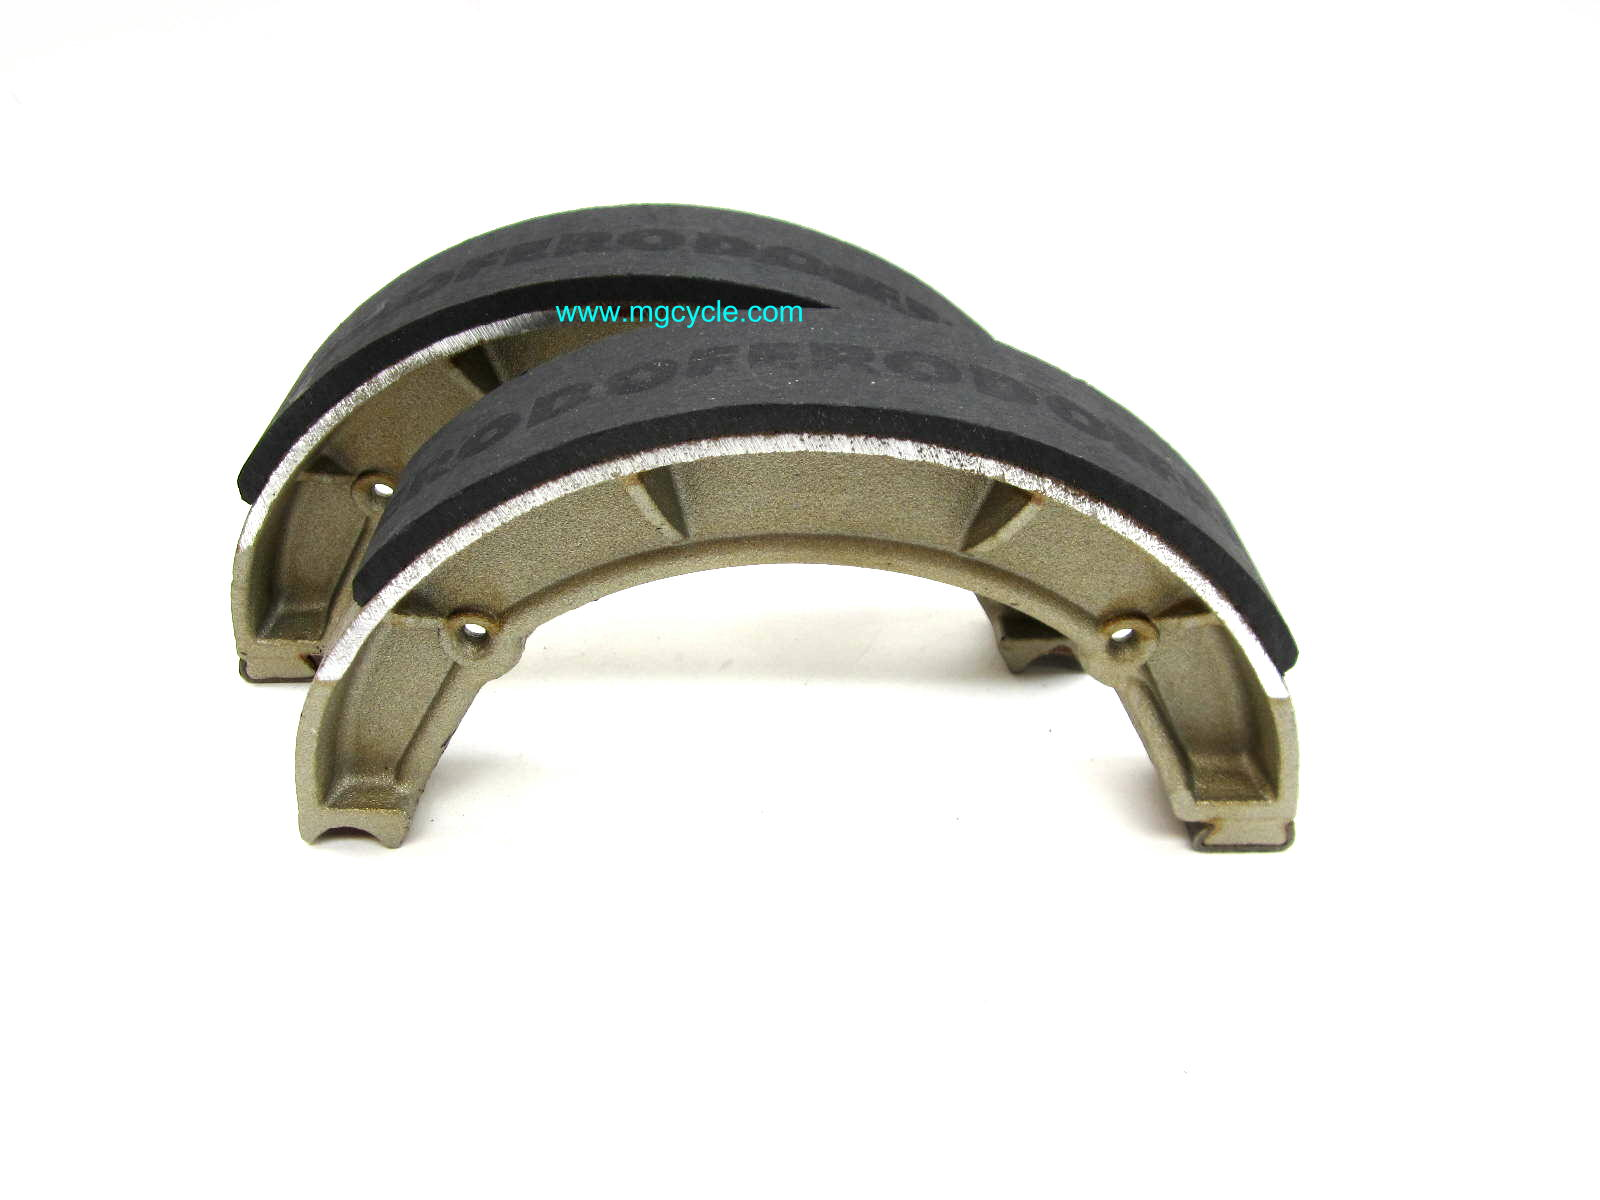 Ferodo rear brake shoes, Ambassador, Eldorado, V700